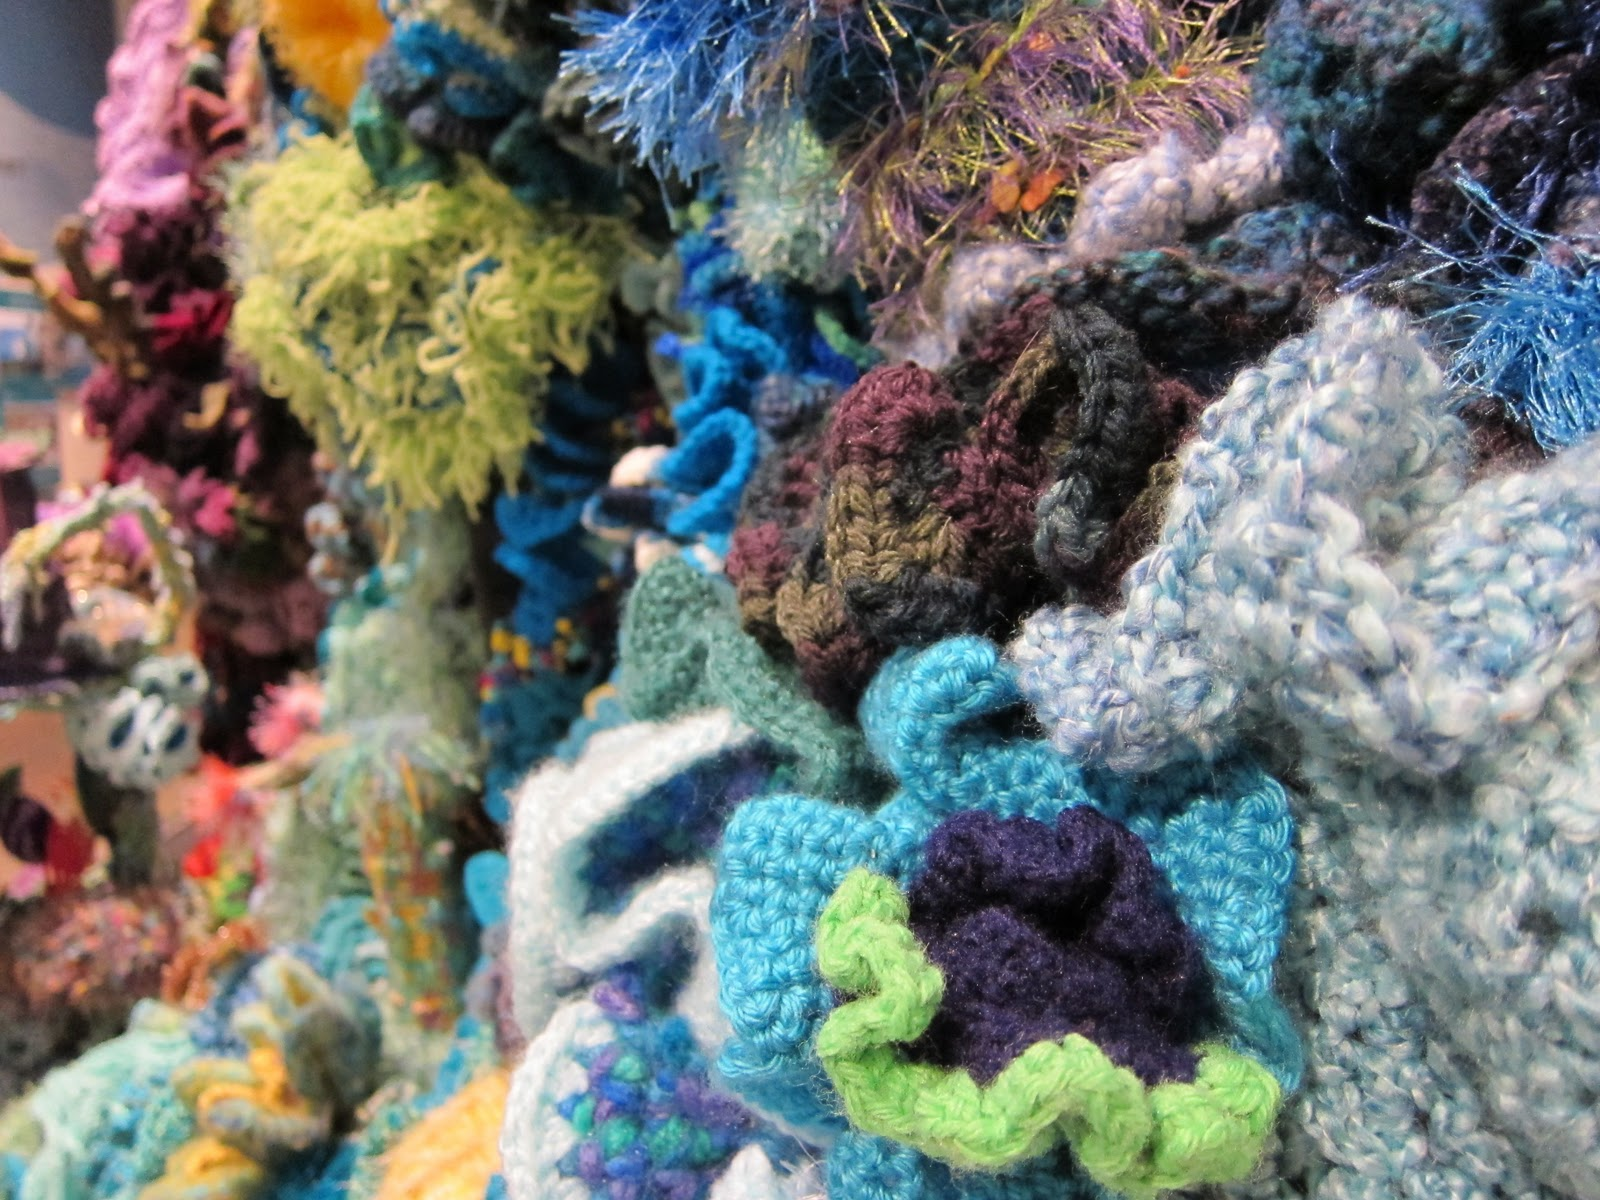 Hyperbolic Crochet Coral Reef Exhibit At The Smithsonian Red